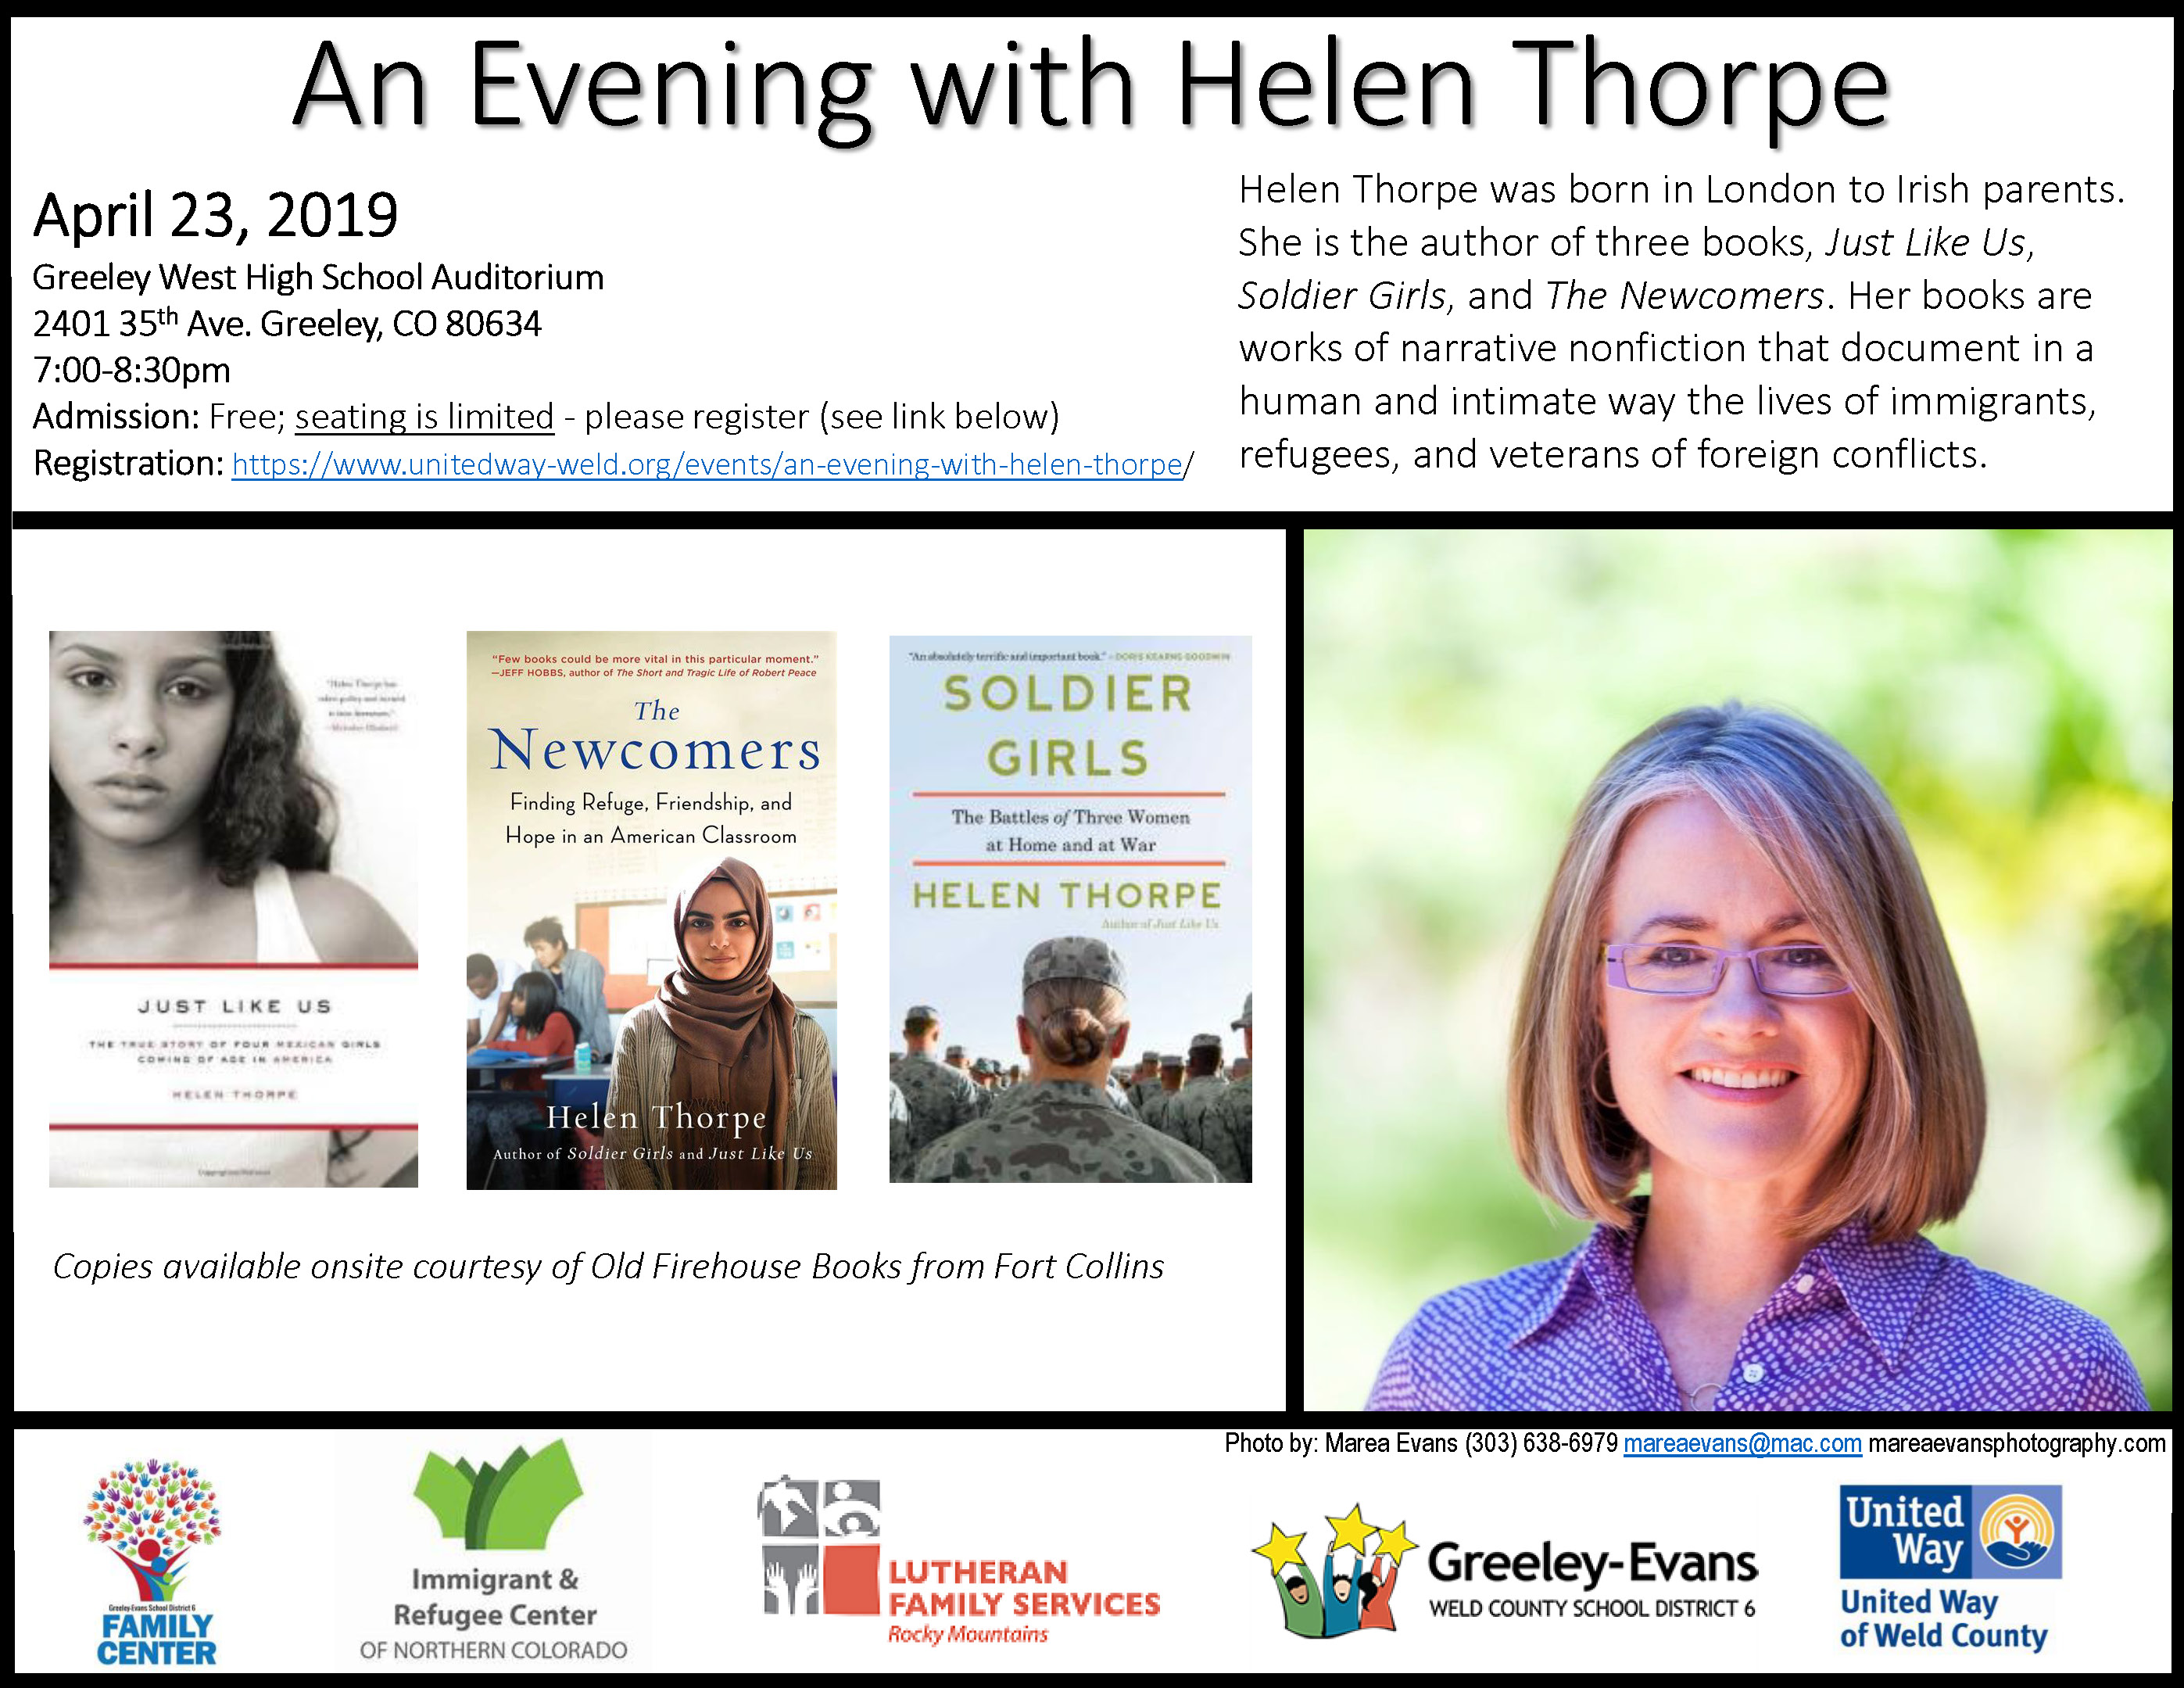 An Evening with Helen Thorpe - Greeley - Lutheran Family Services